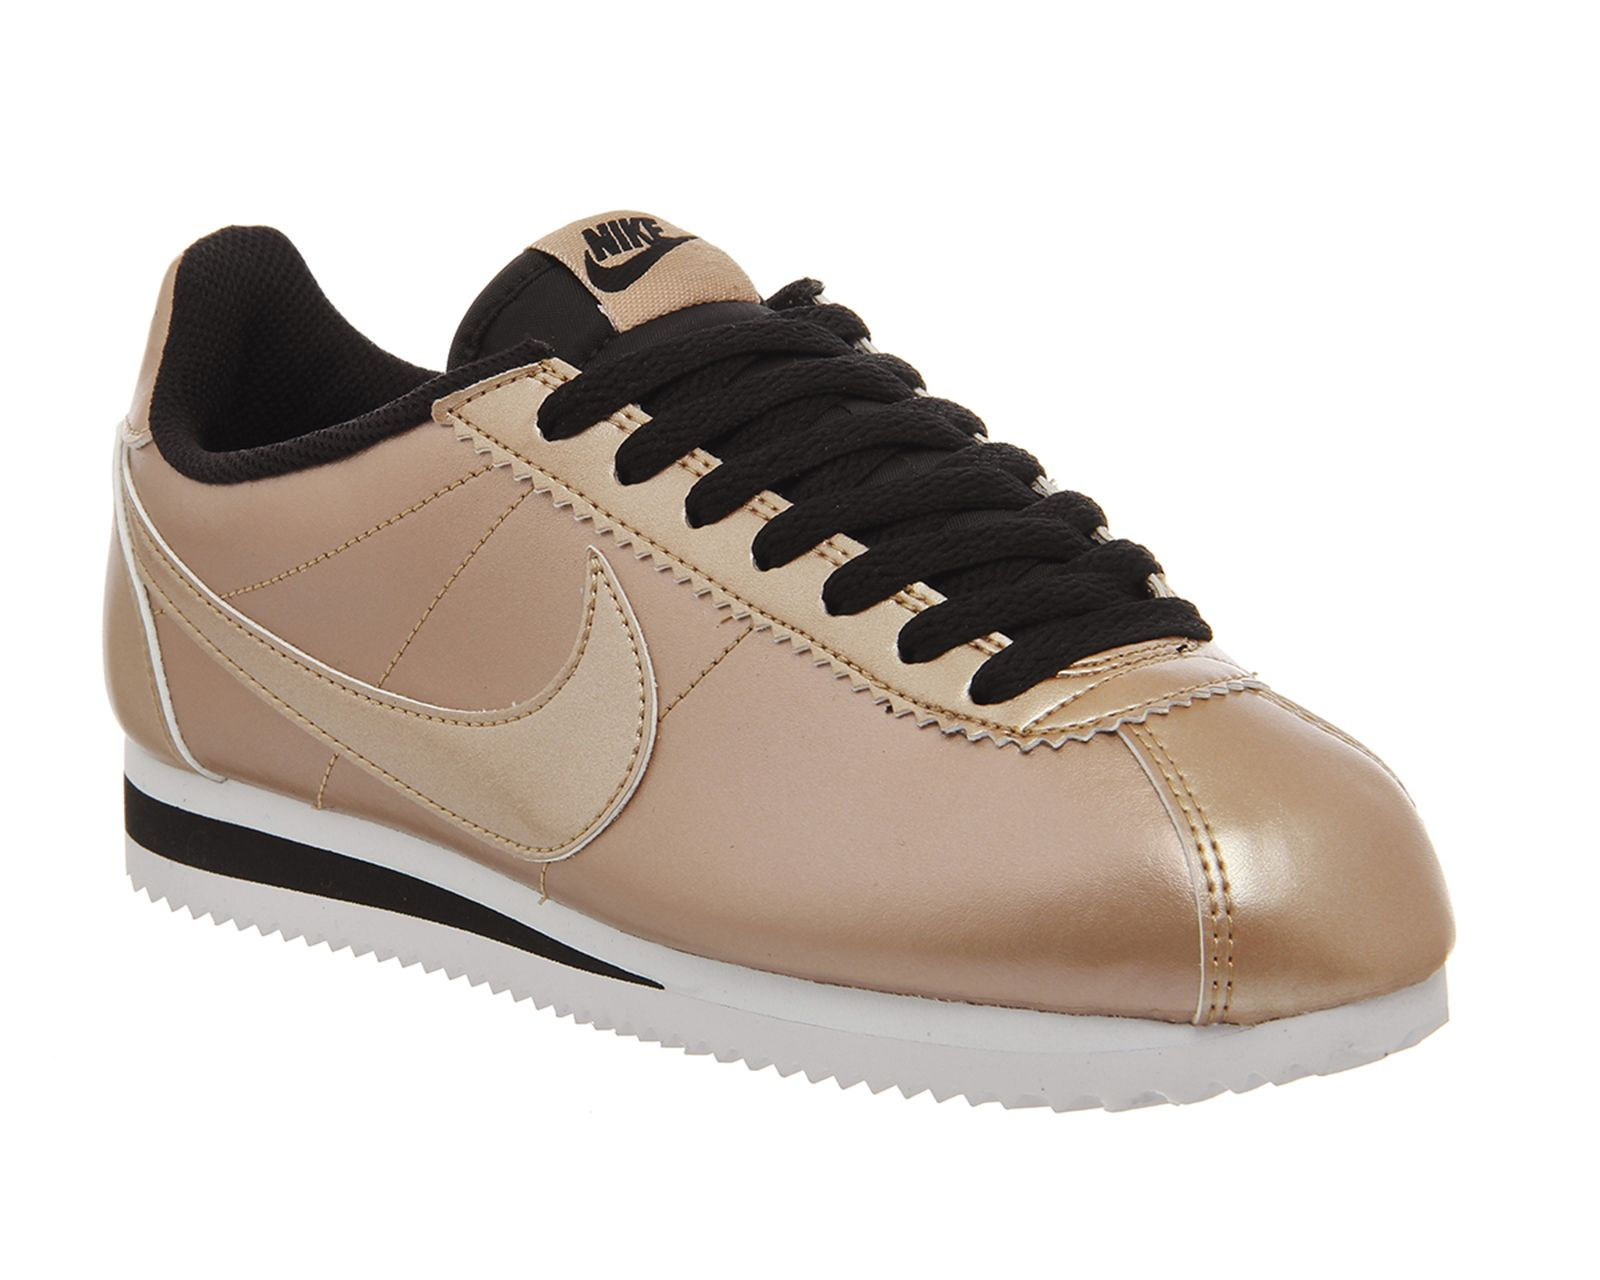 Buy Metallic Bronze Black Leather W Nike Classic Cortez Og from OFFICE.co.uk